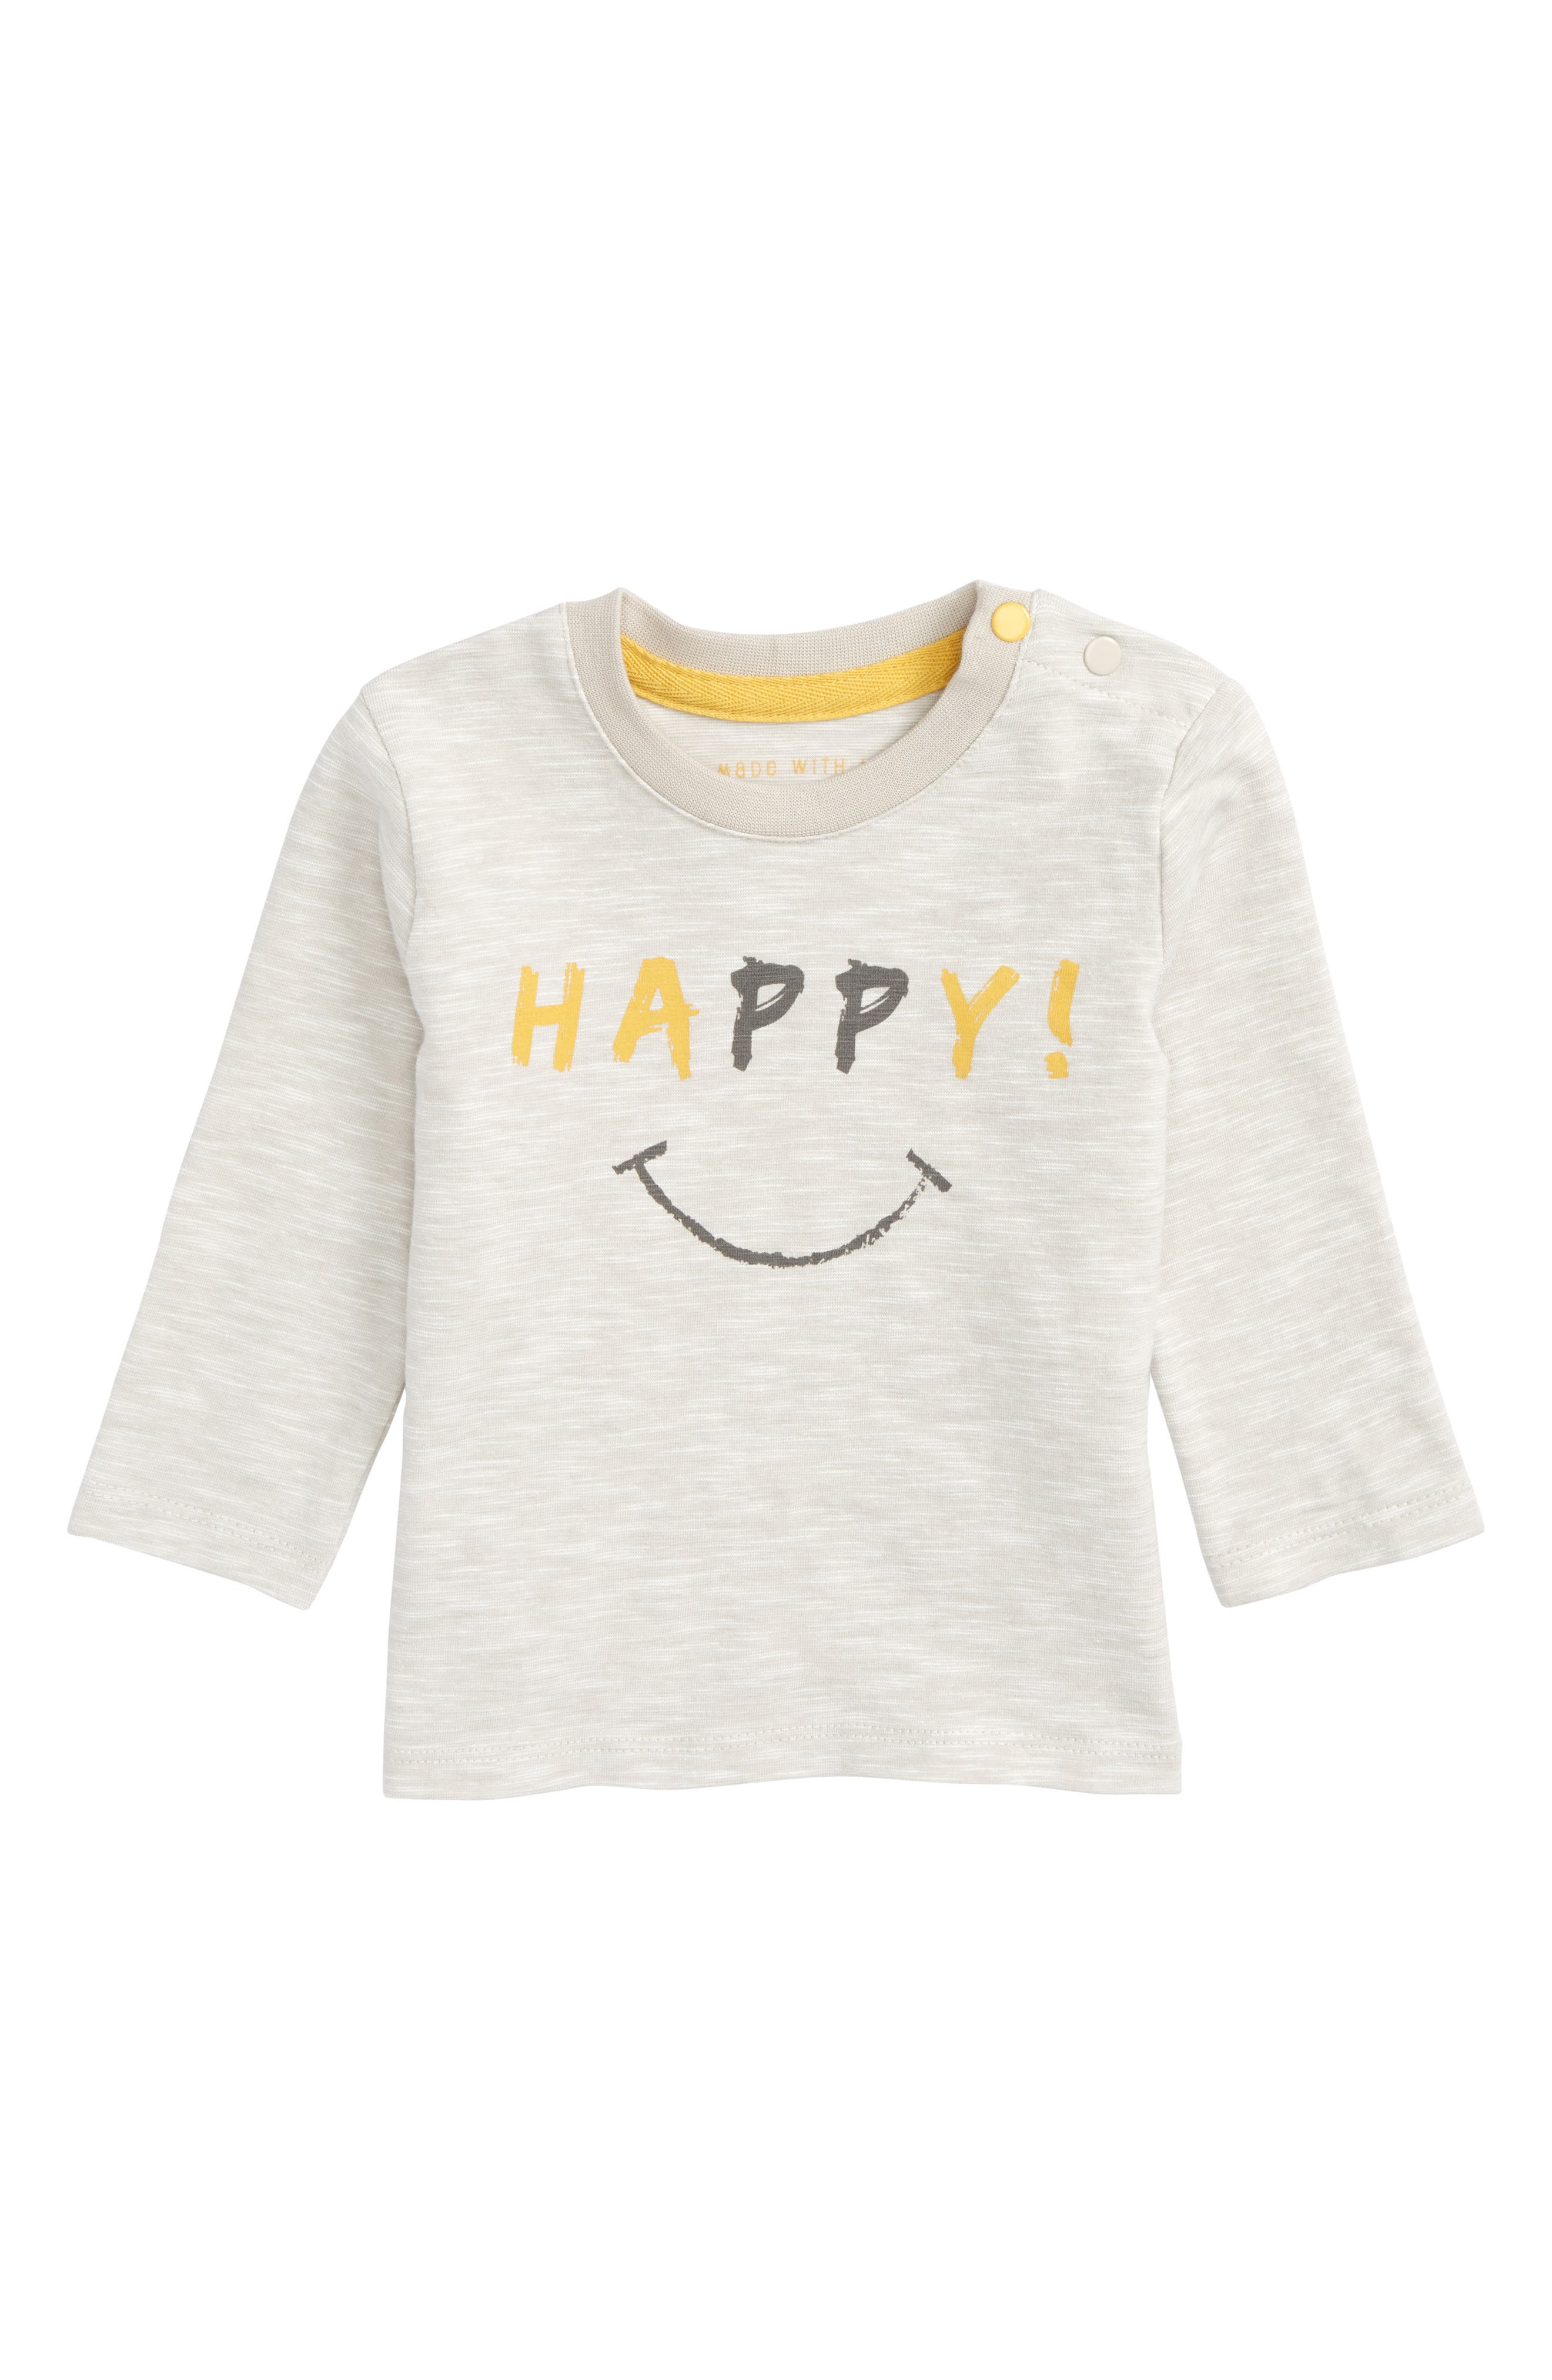 Happy Graphic T-Shirt,                         Main,                         color, 020